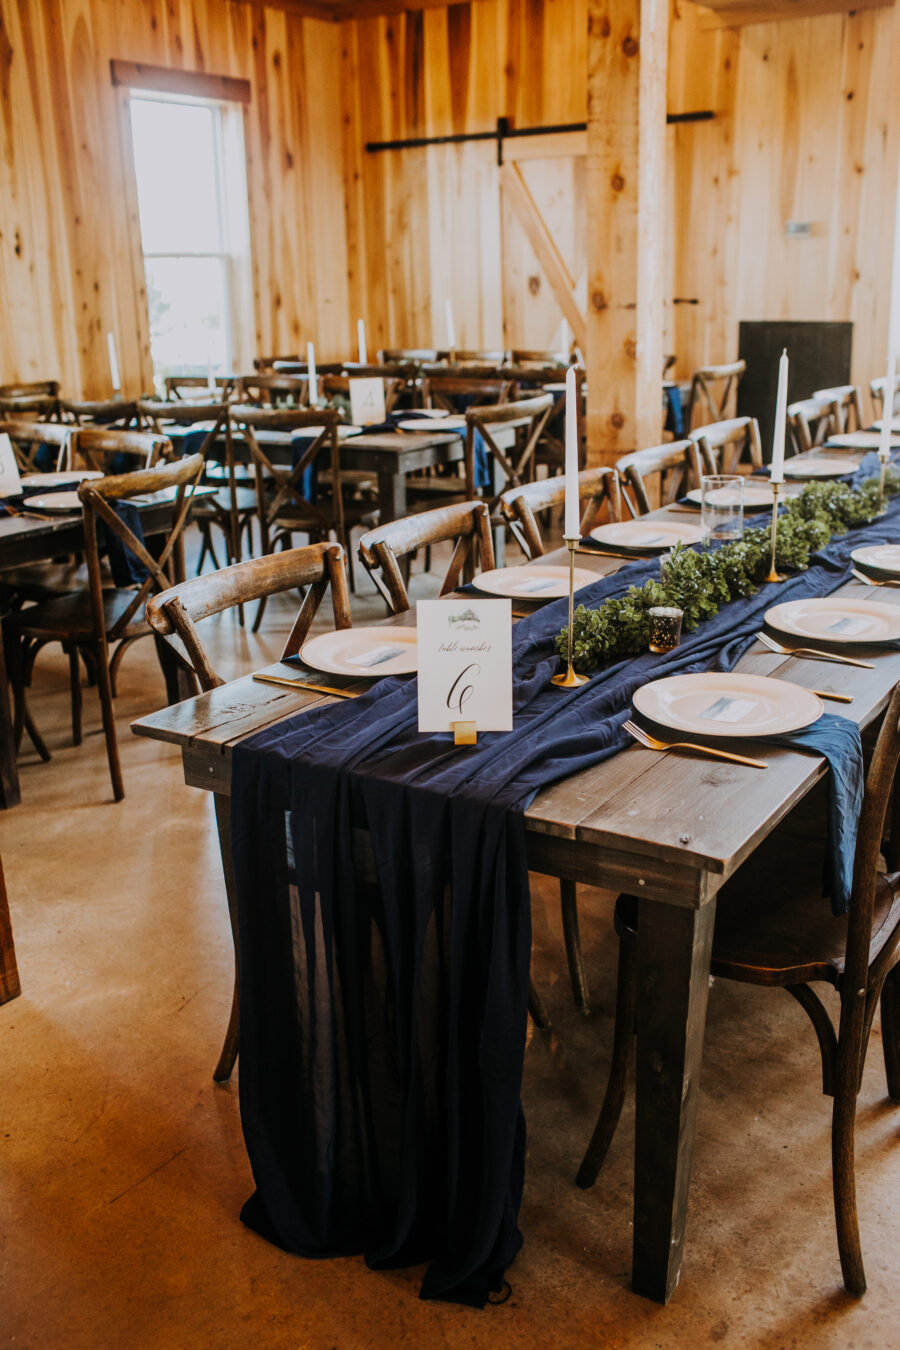 Rustic wedding table decor: Nashville Wedding with Beautiful Views by Teale Photography featured on Nashville Bride Guide